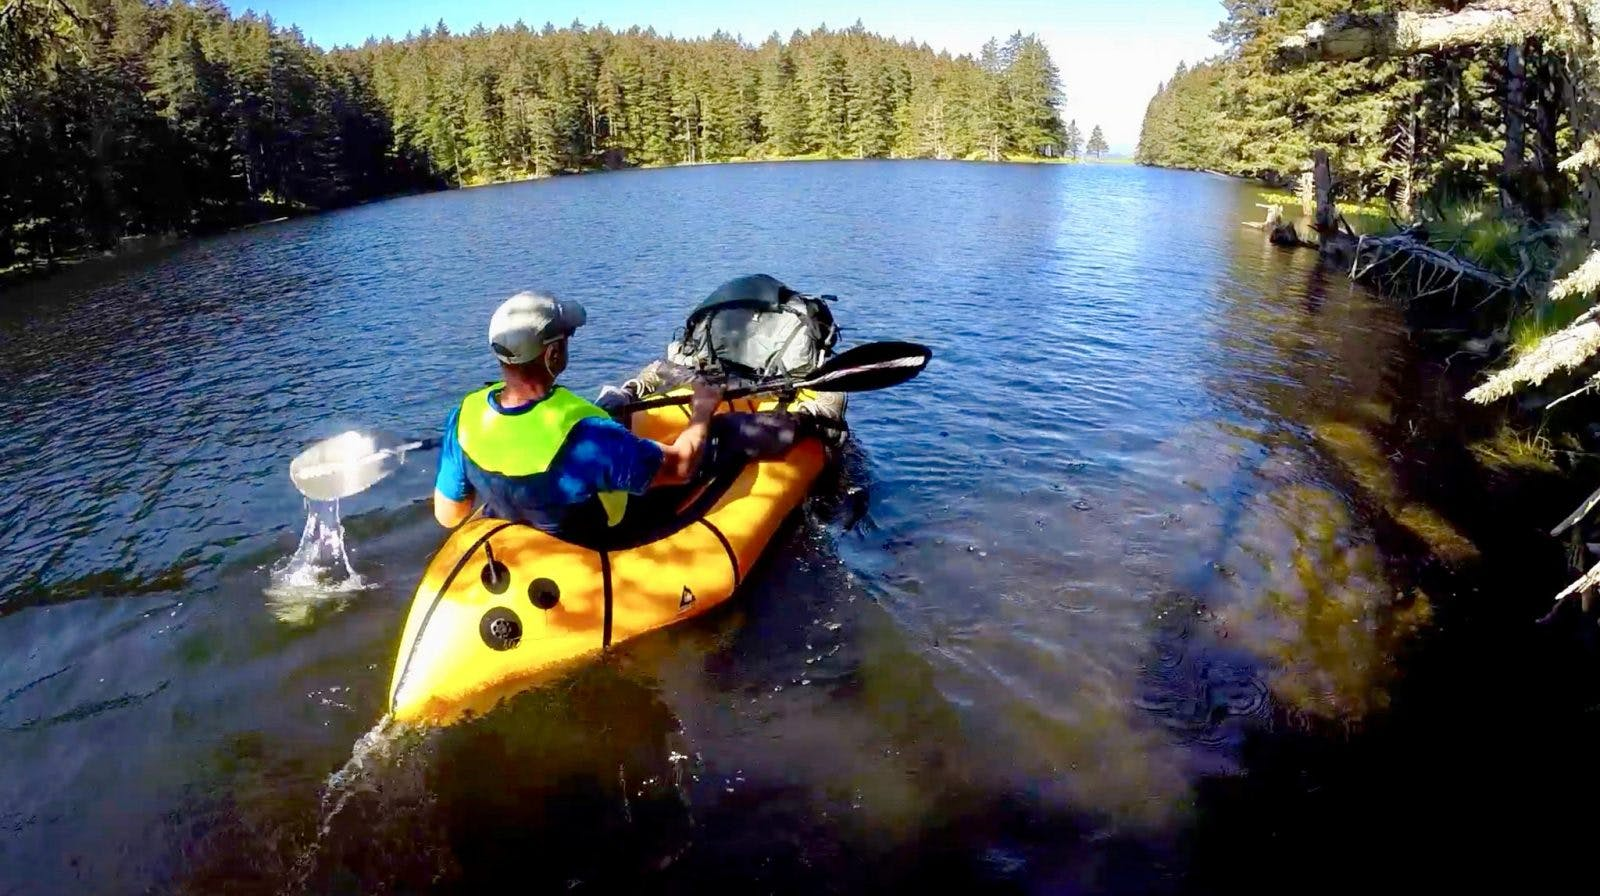 Paddling across a small lake that bisects the south end of Long Island, off the coast of Kodiak Island, Alaska. When the devil's club gets thick and you find a nice lake that offers a way around it, blow up your raft. ;^)